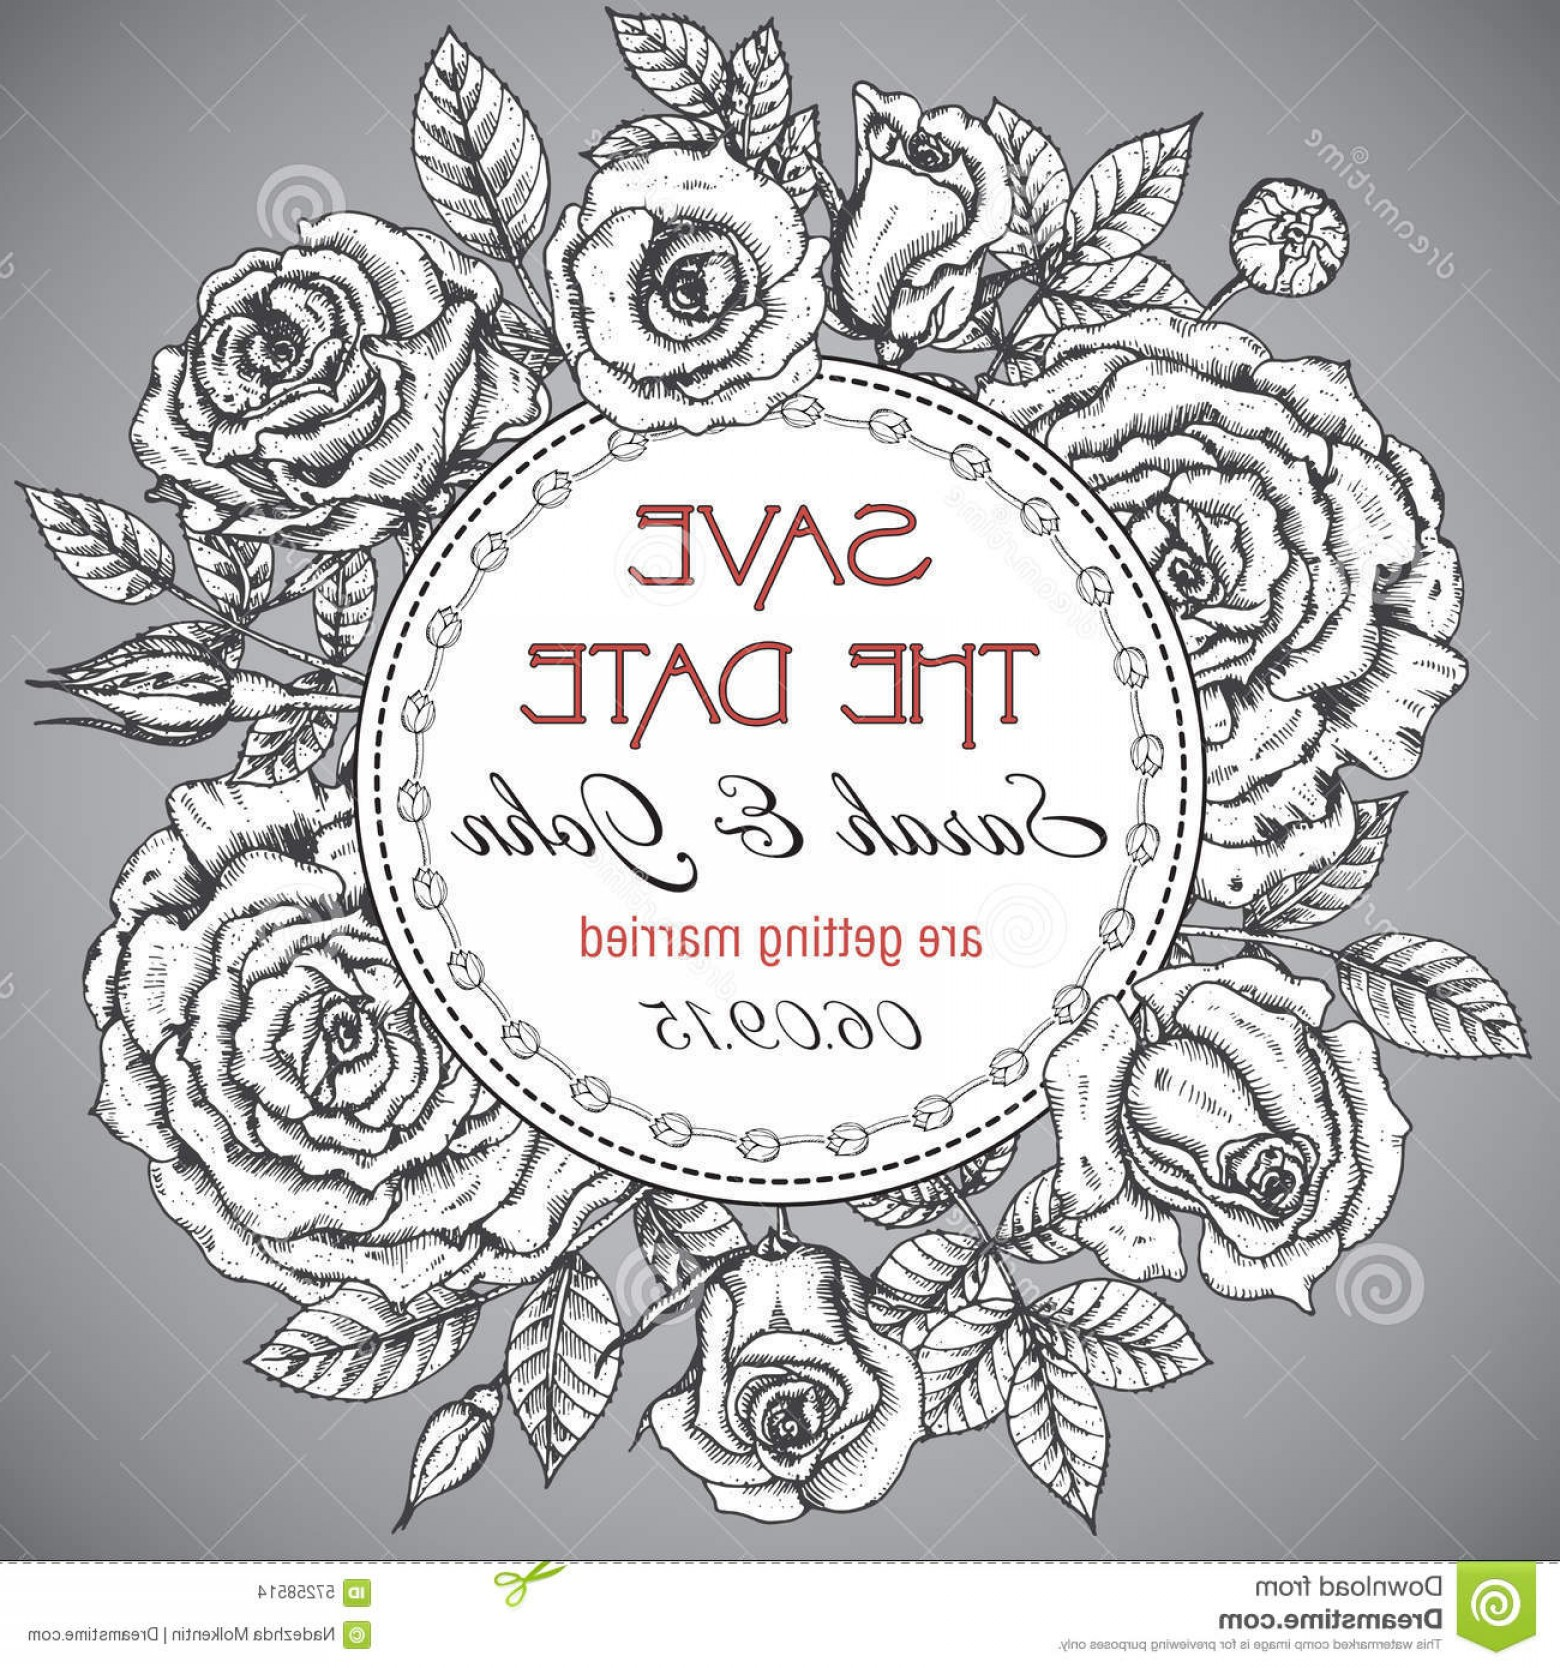 Elegant Wedding Vector Graphics: Stock Illustration Vintage Elegant Wedding Invitation Graphic Roses Card Save Date Leaves Vector Illustration Image